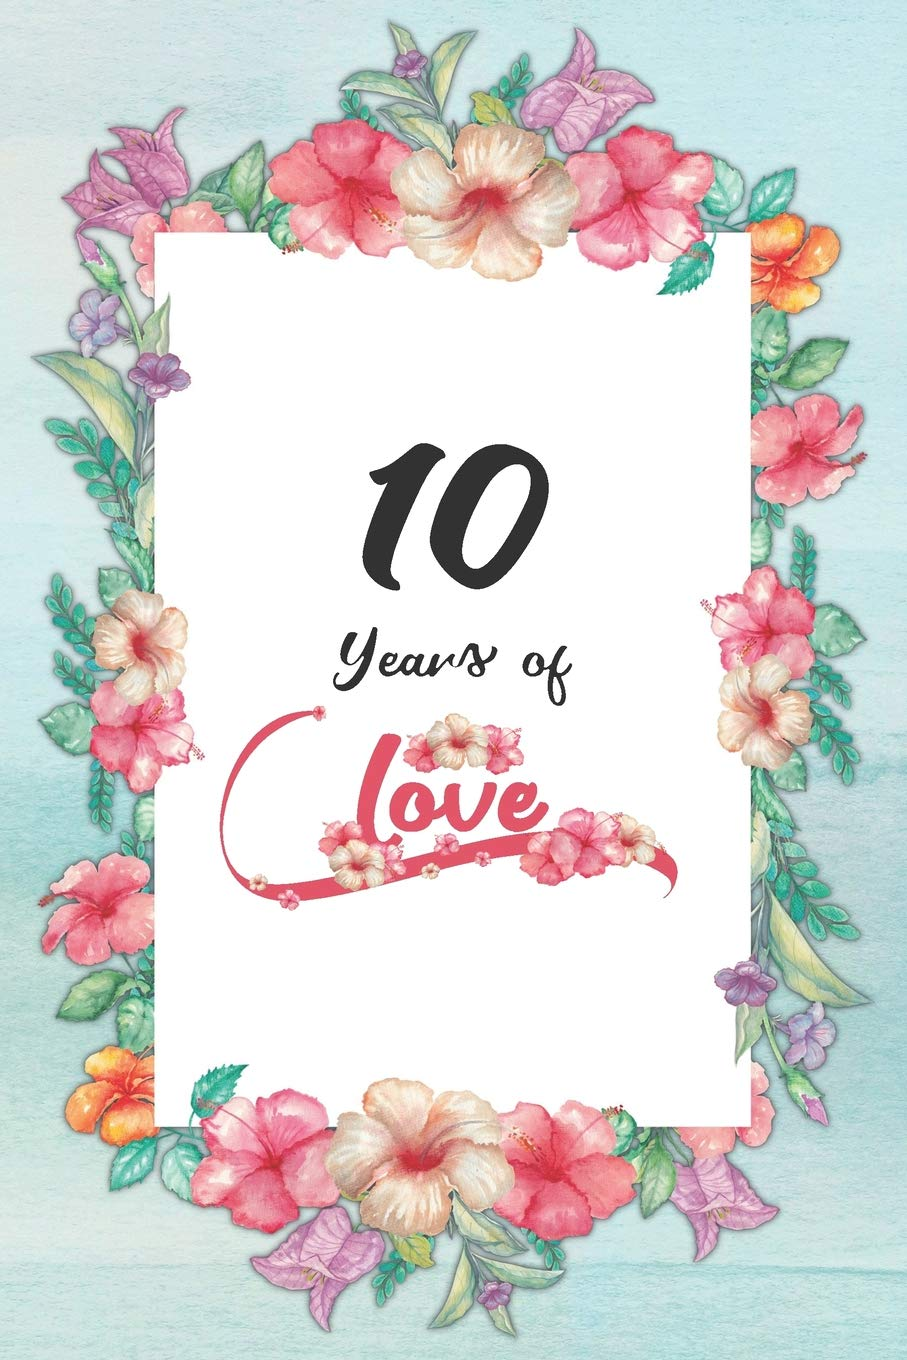 10th Anniversary Journal Lined Journal Notebook 10th Anniversary Gifts For Her Romantic 10 Year Wedding Anniversary Celebration Gift Fun And Practical Alternative To A Card 10 Years